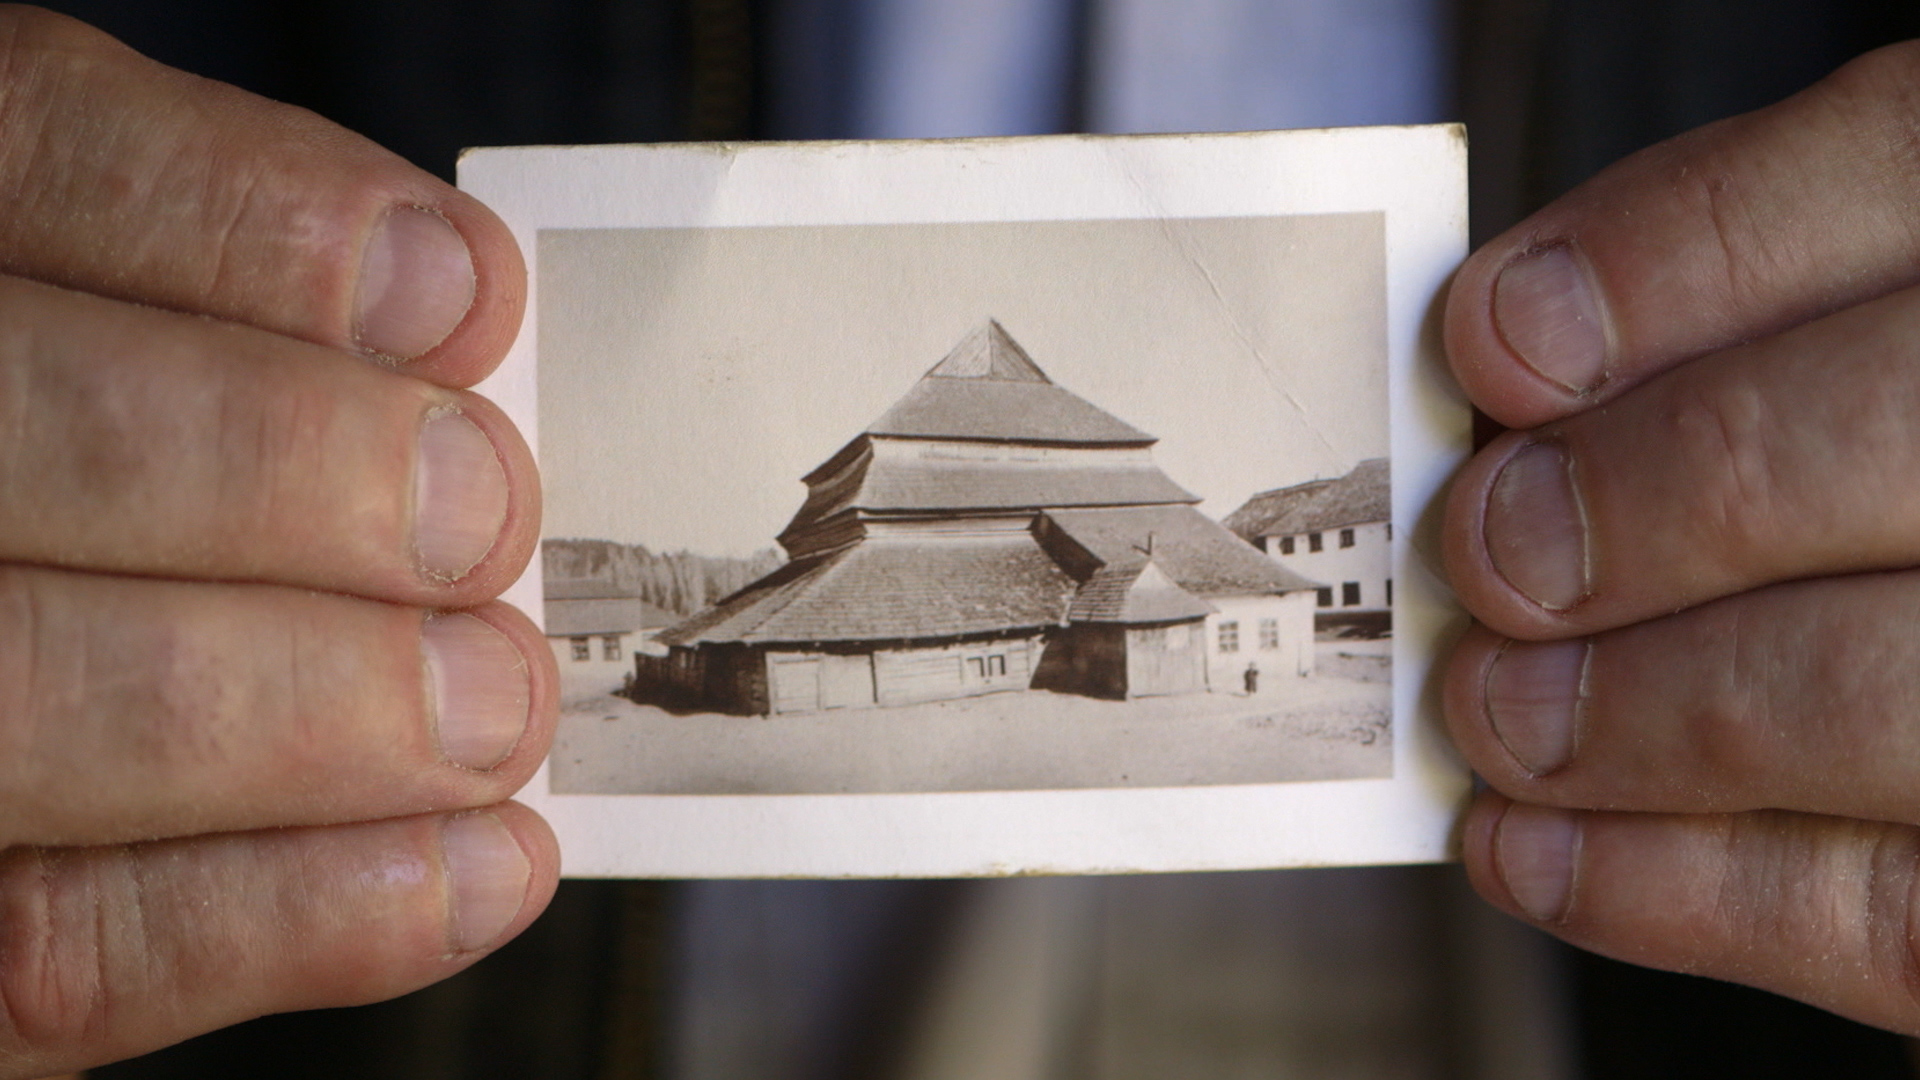 Still 1: Rick Brown holds the photo of Gwoździec Synagogue that inspired them to reconstruct it.